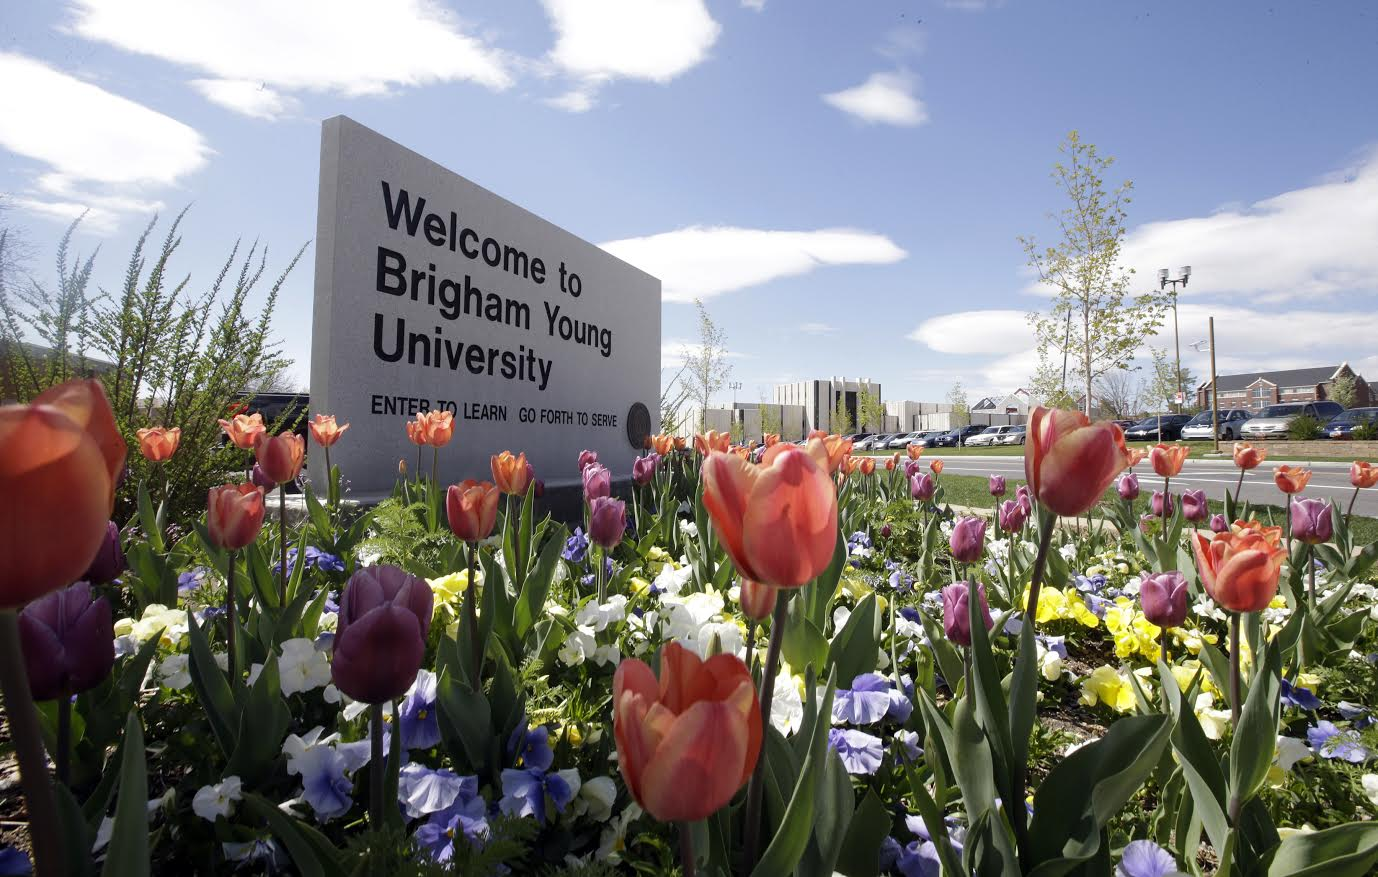 FILE - This April 19, 2016, file photo, shows a welcome sign to Brigham Young University. University officials found out Thursday, Aug. 4, 2016, that federal authorities will investigate the campus process for handling reports of sexual assault, Provo, Utah | AP photo by Rick Bowmer, St. George News